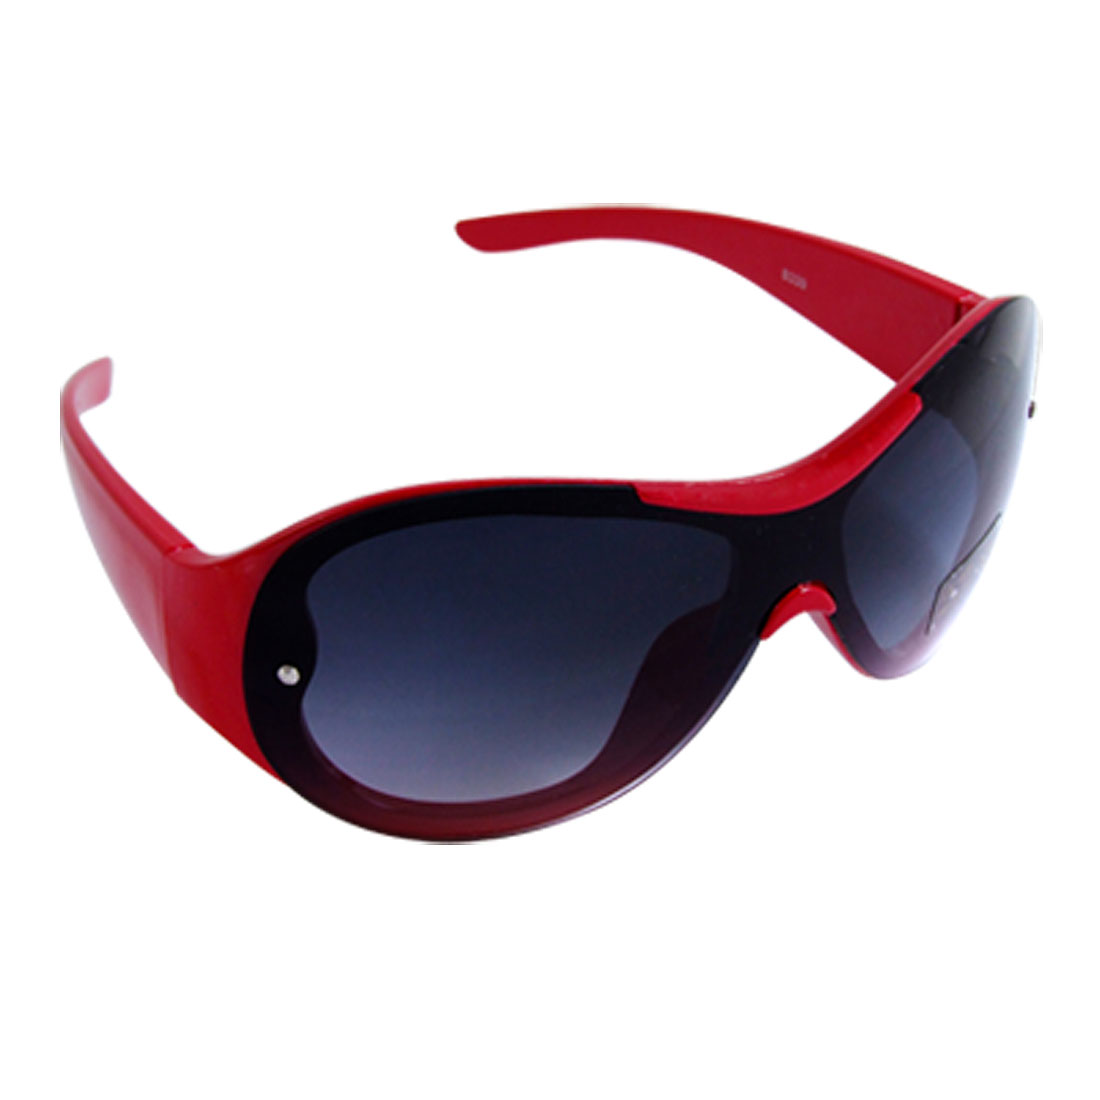 Kids Red Plastic Full-rim Dark Lens Leisure Sunglasses